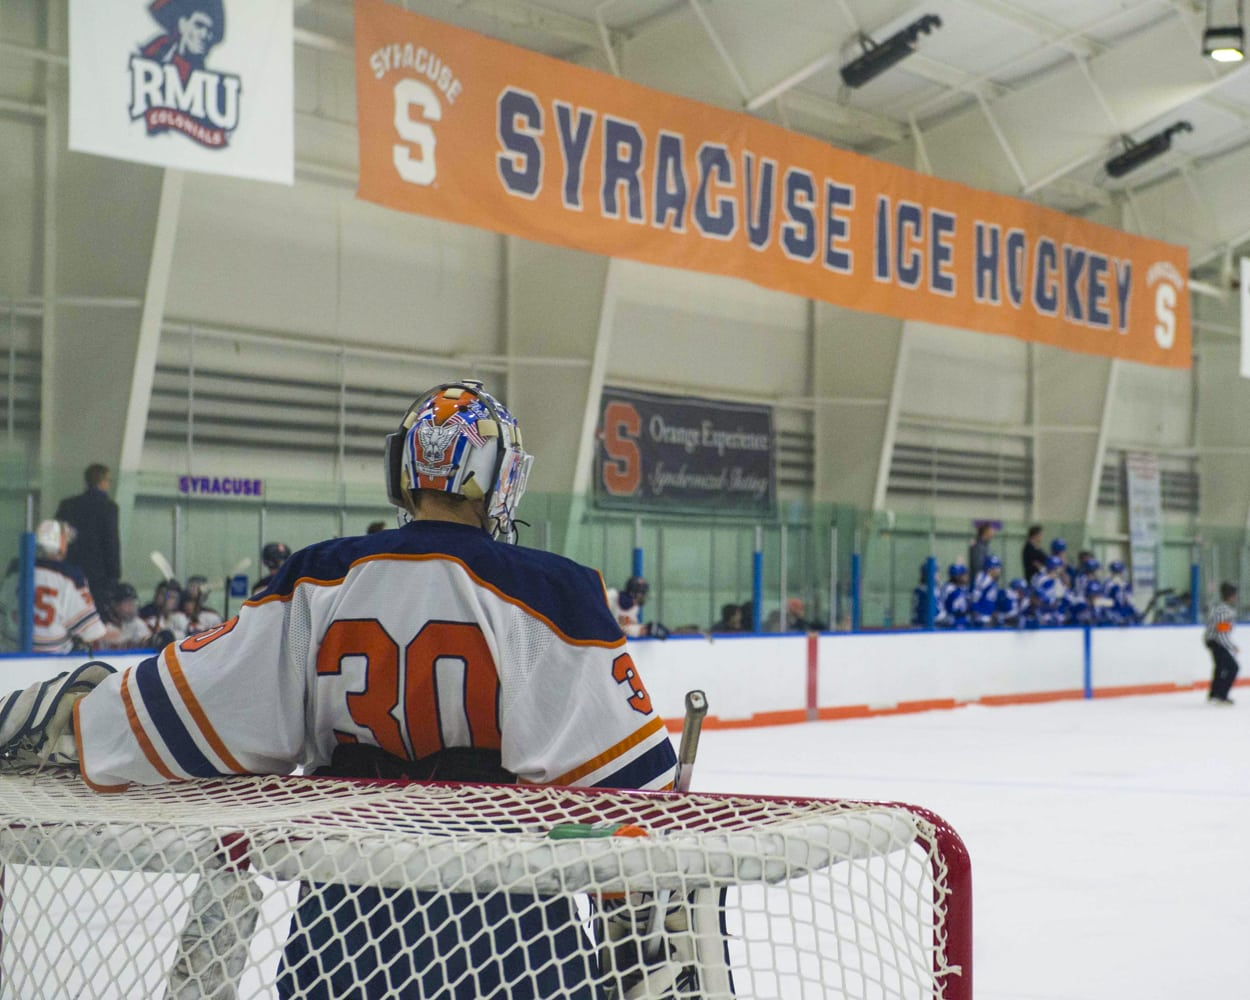 SU hockey goalie helmet